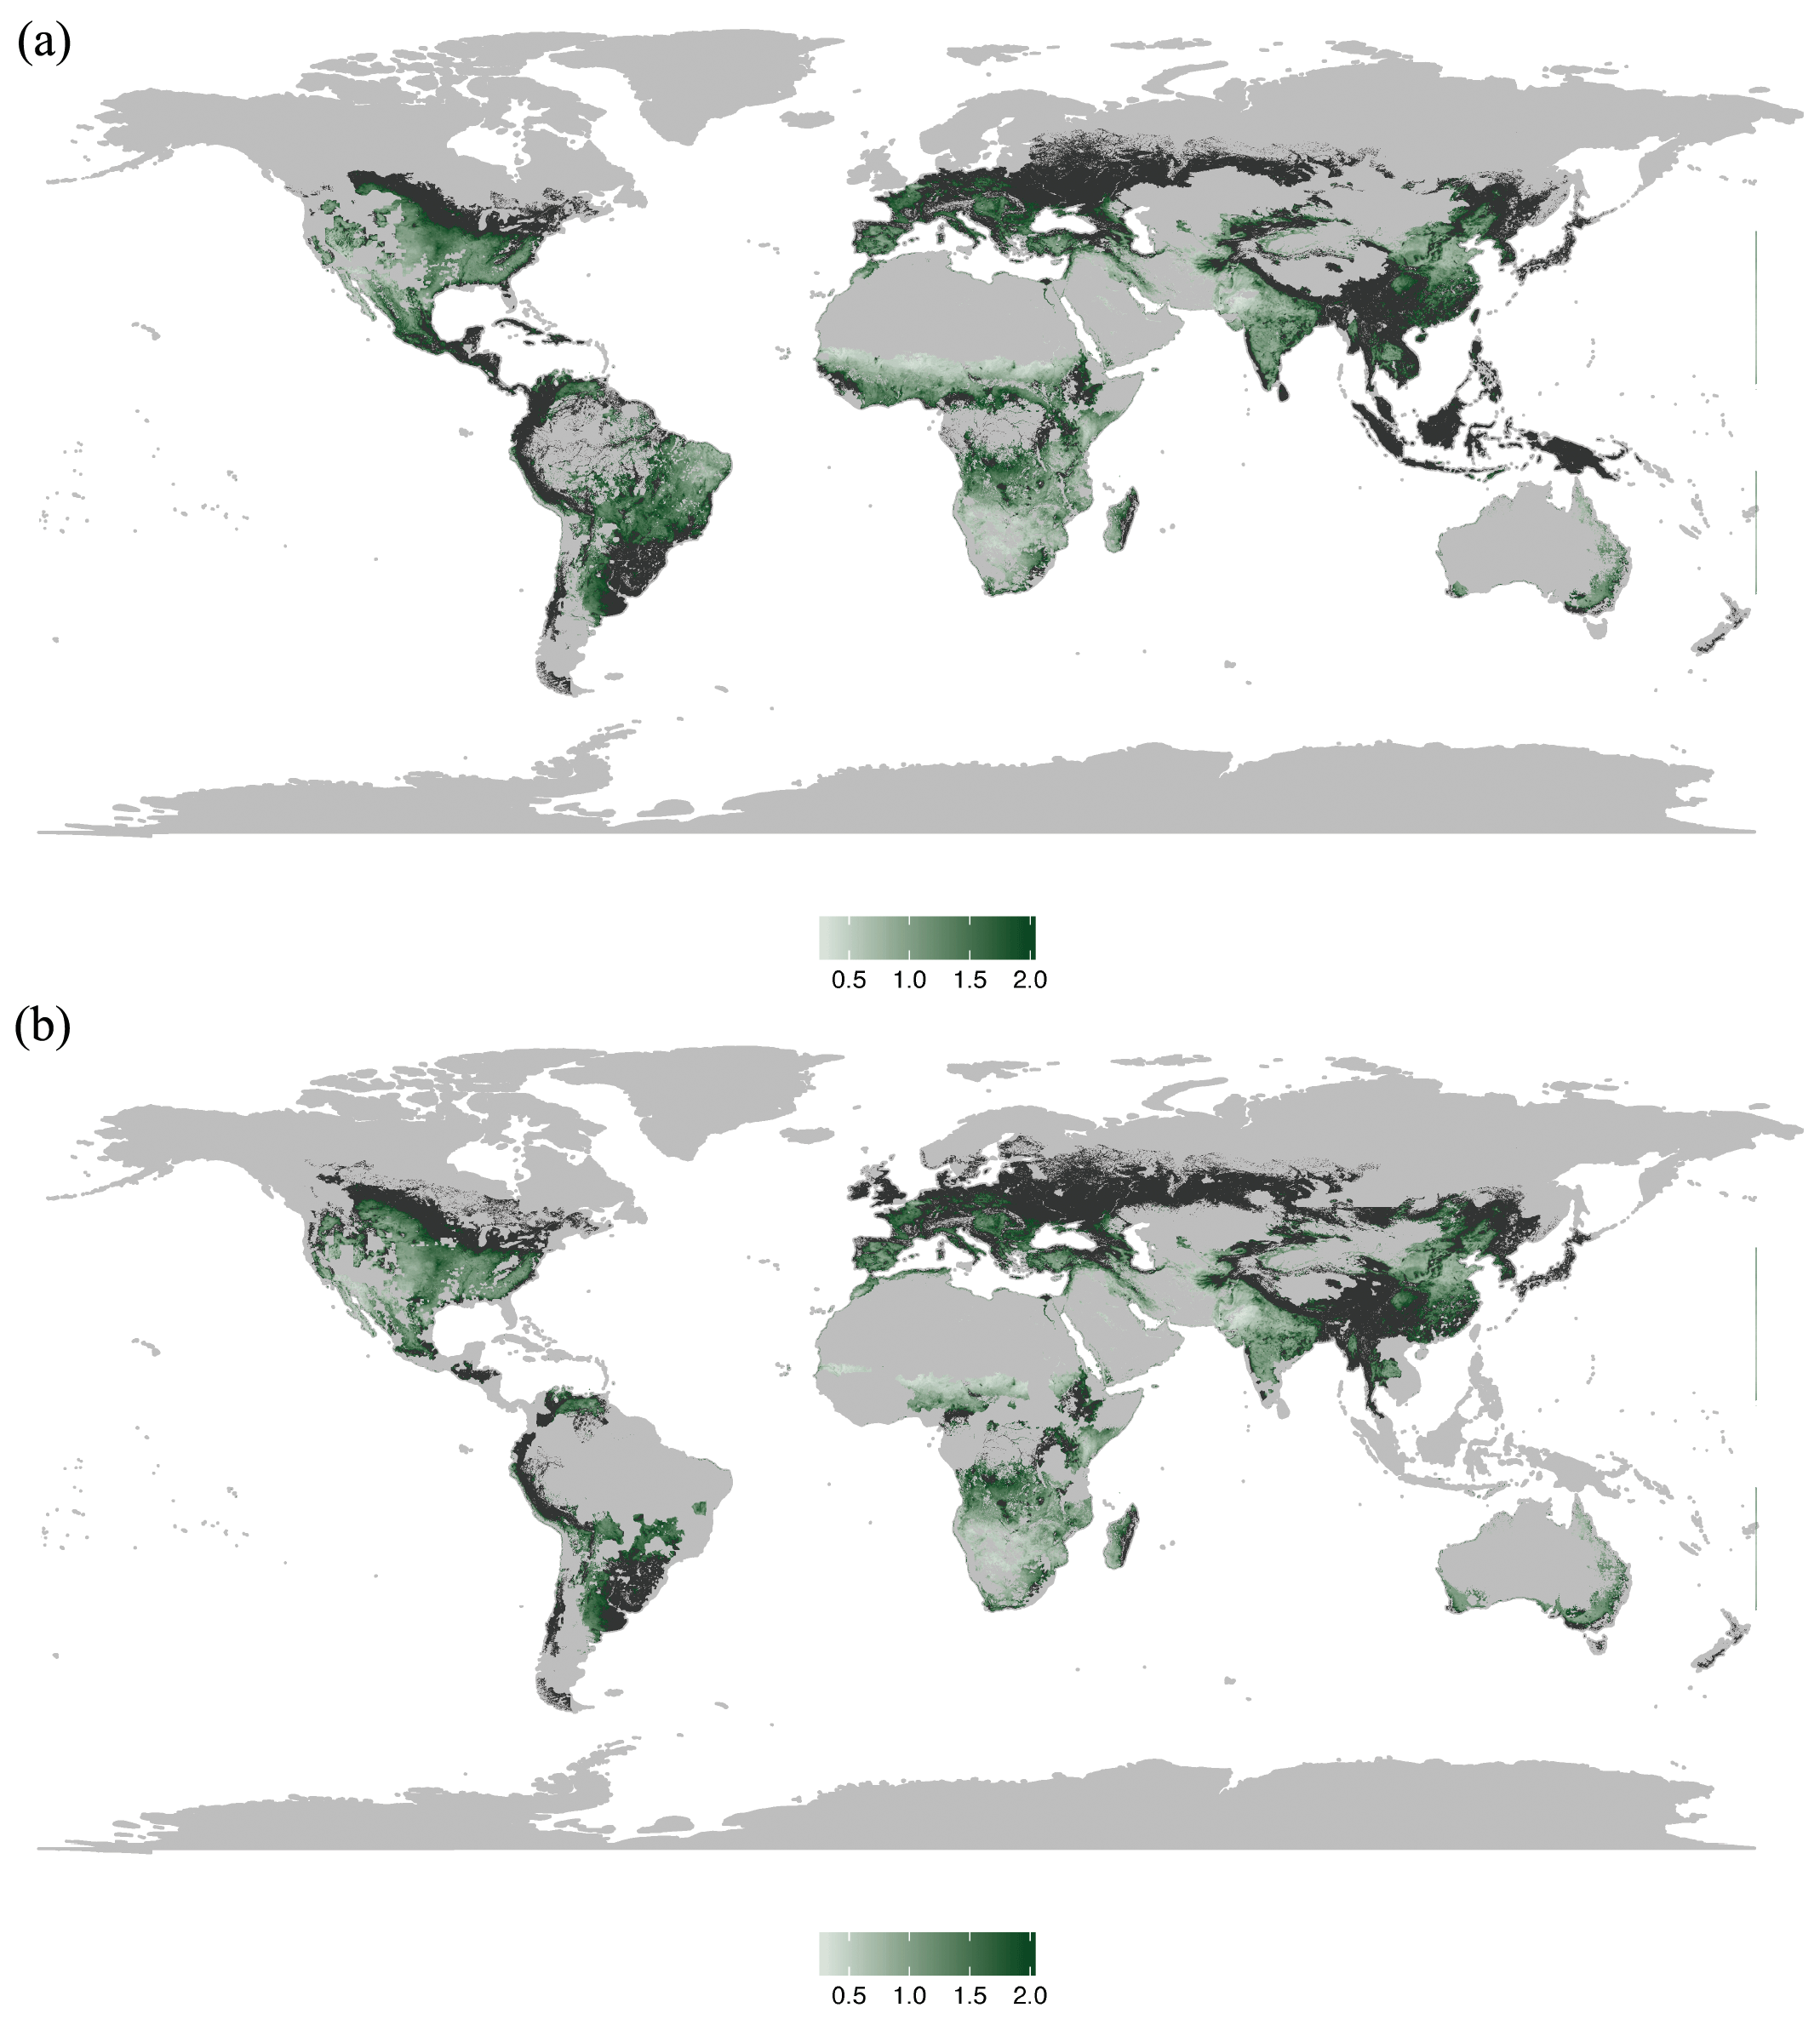 SOIL - Global meta-analysis of the relationship between soil